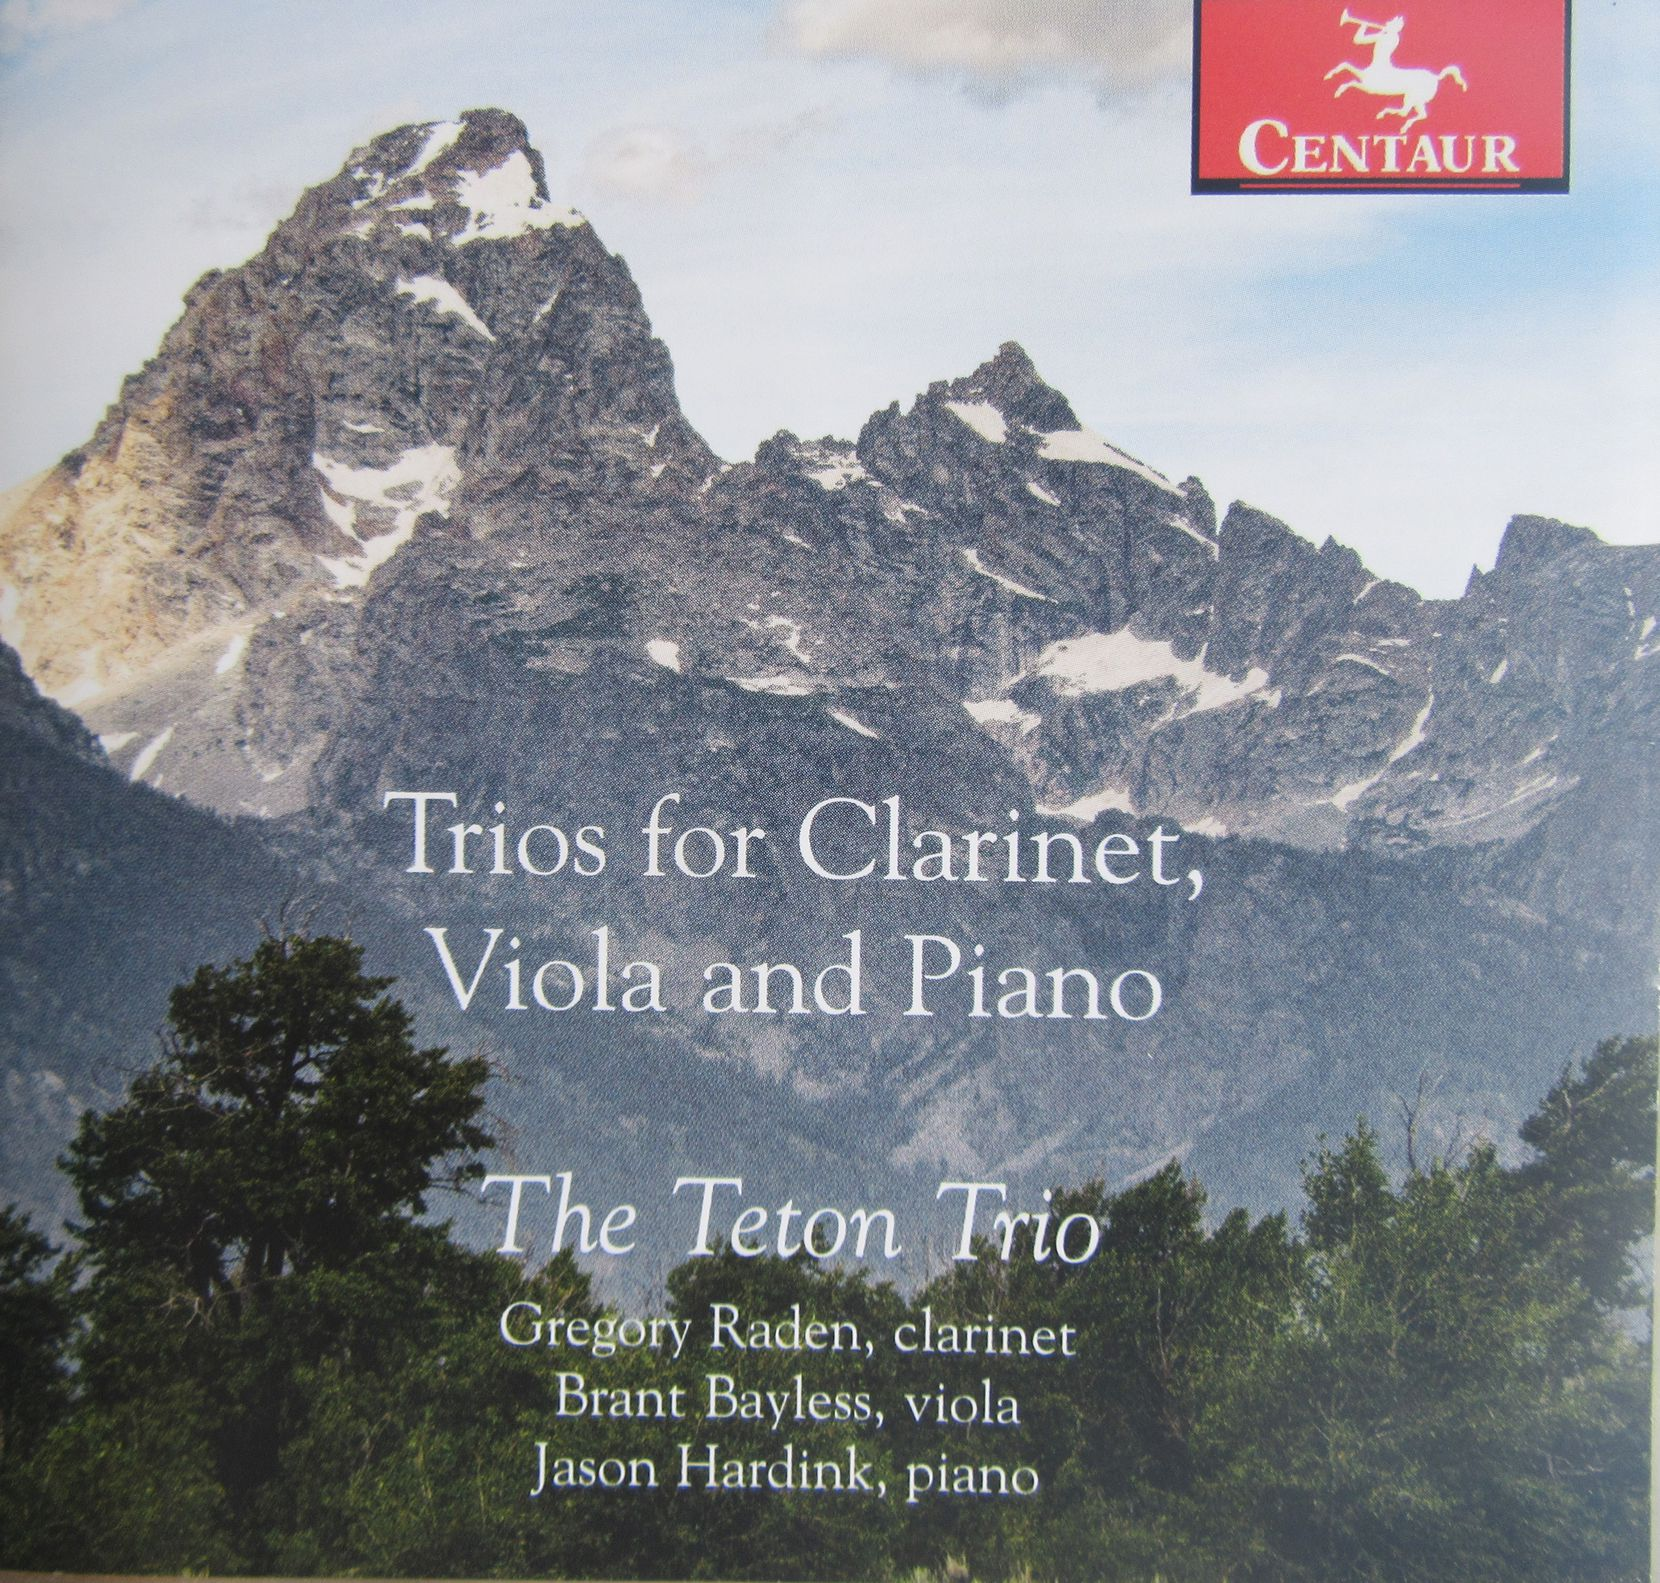 This new recording of clarinet trios by the Teton Trio features Gregory Raden, Brant Bayless and Jason Hardink.